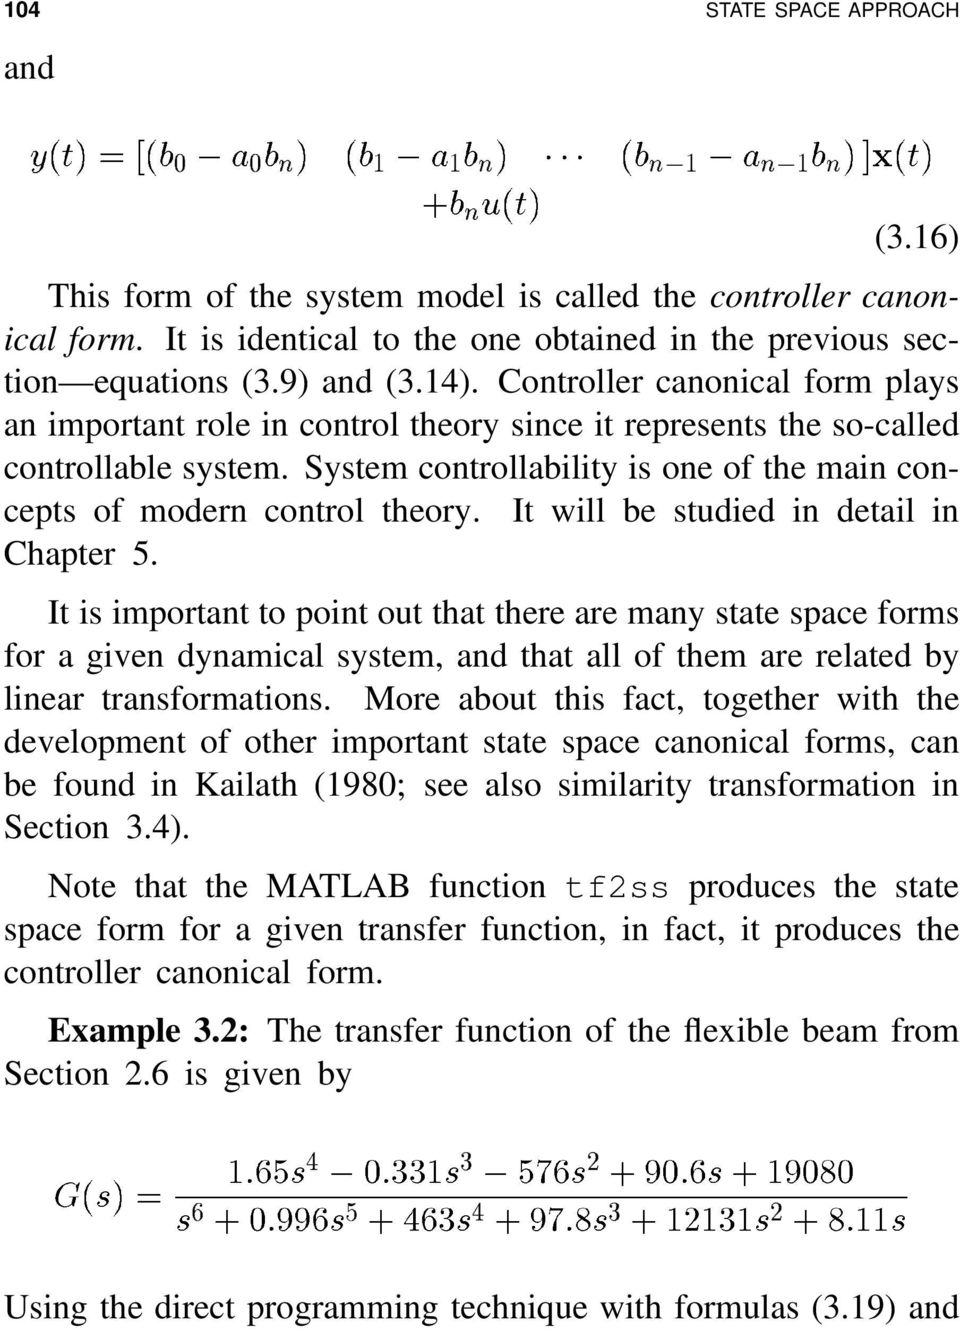 of modern control theory It will be studied in detail in Chapter 5 It is important to point out that there are many state space forms for a given dynamical system, and that all of them are related by